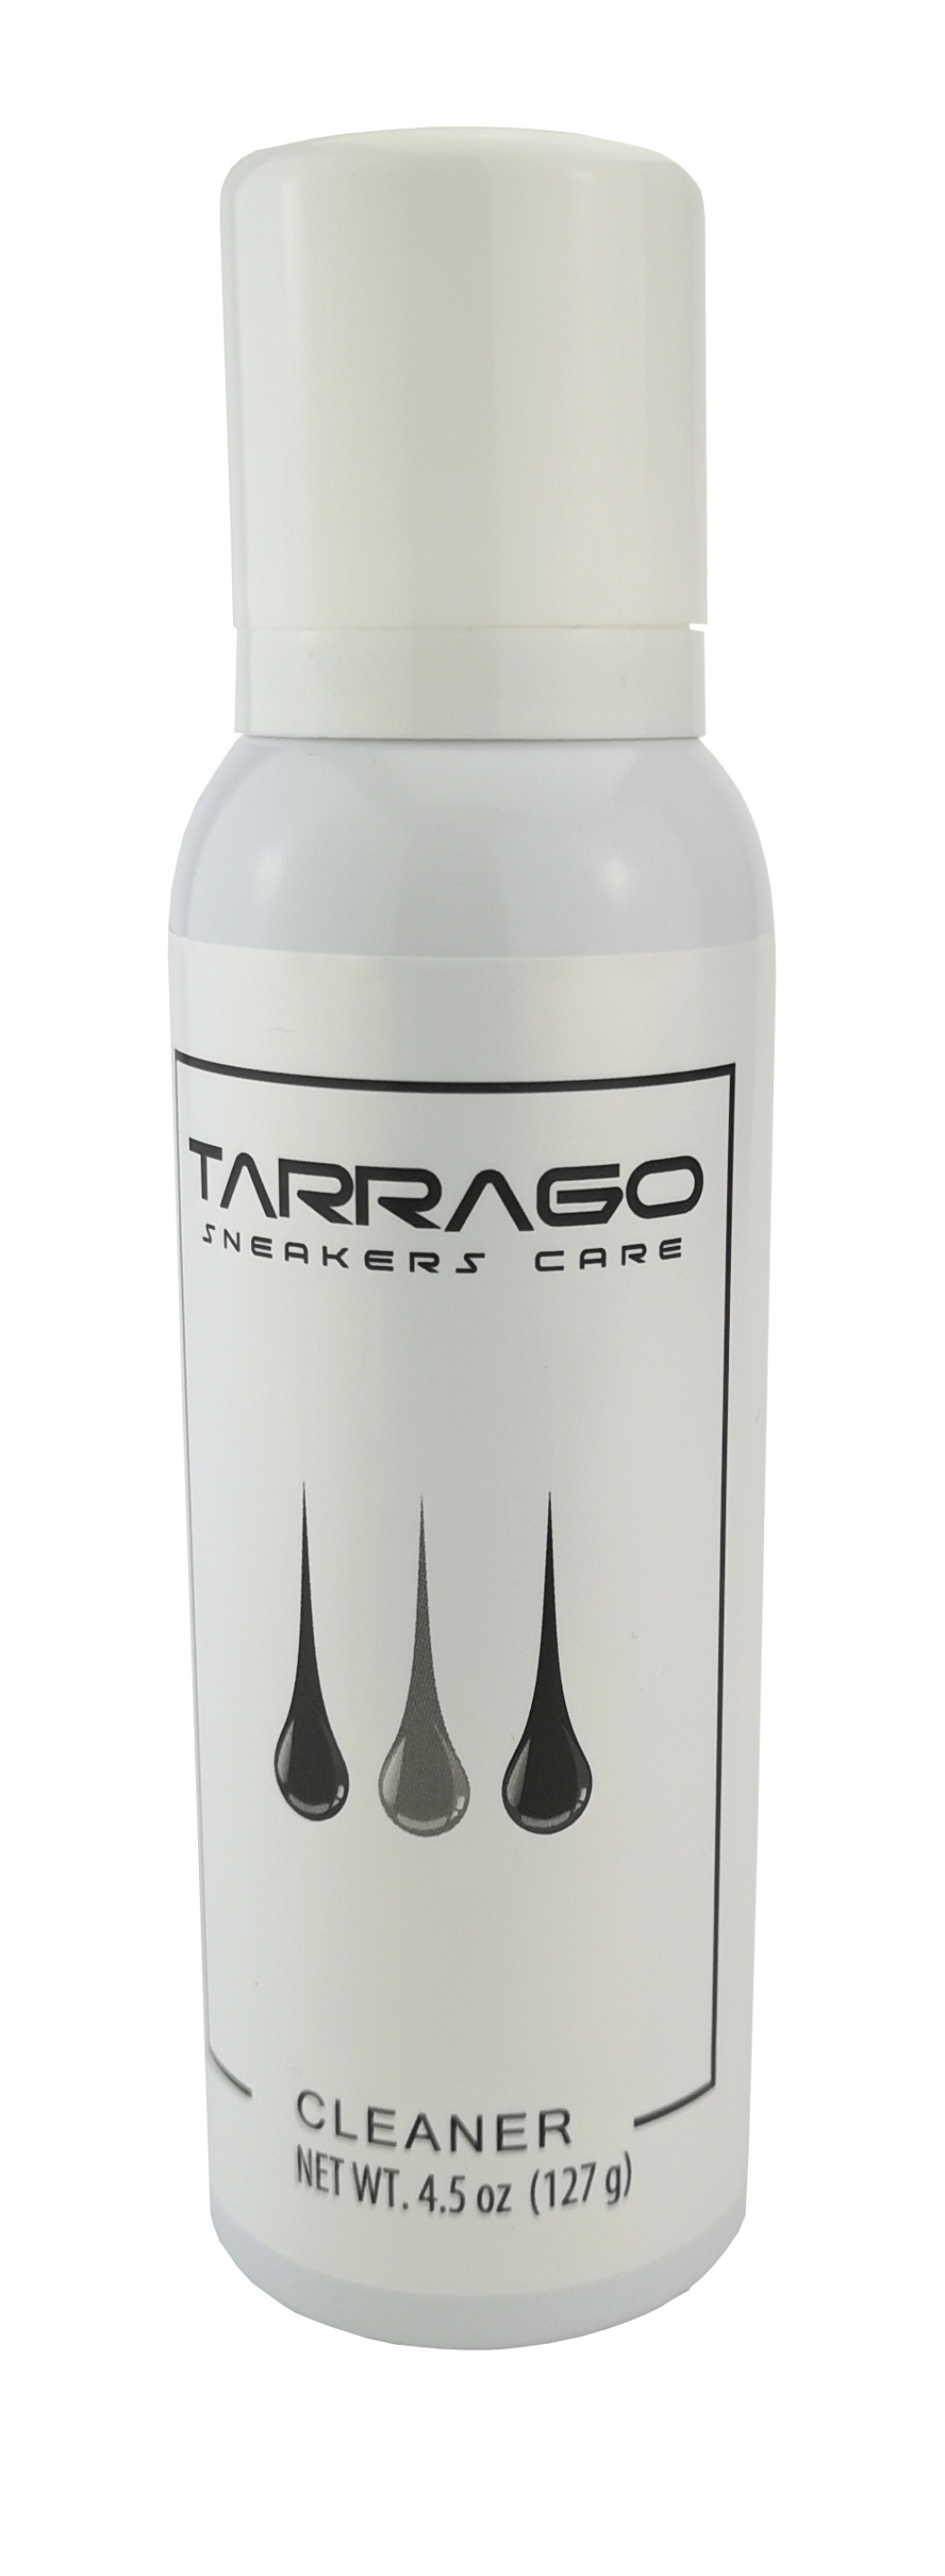 Tarrago Sneakers Cleaner Reiniger 125 ml Tiegel